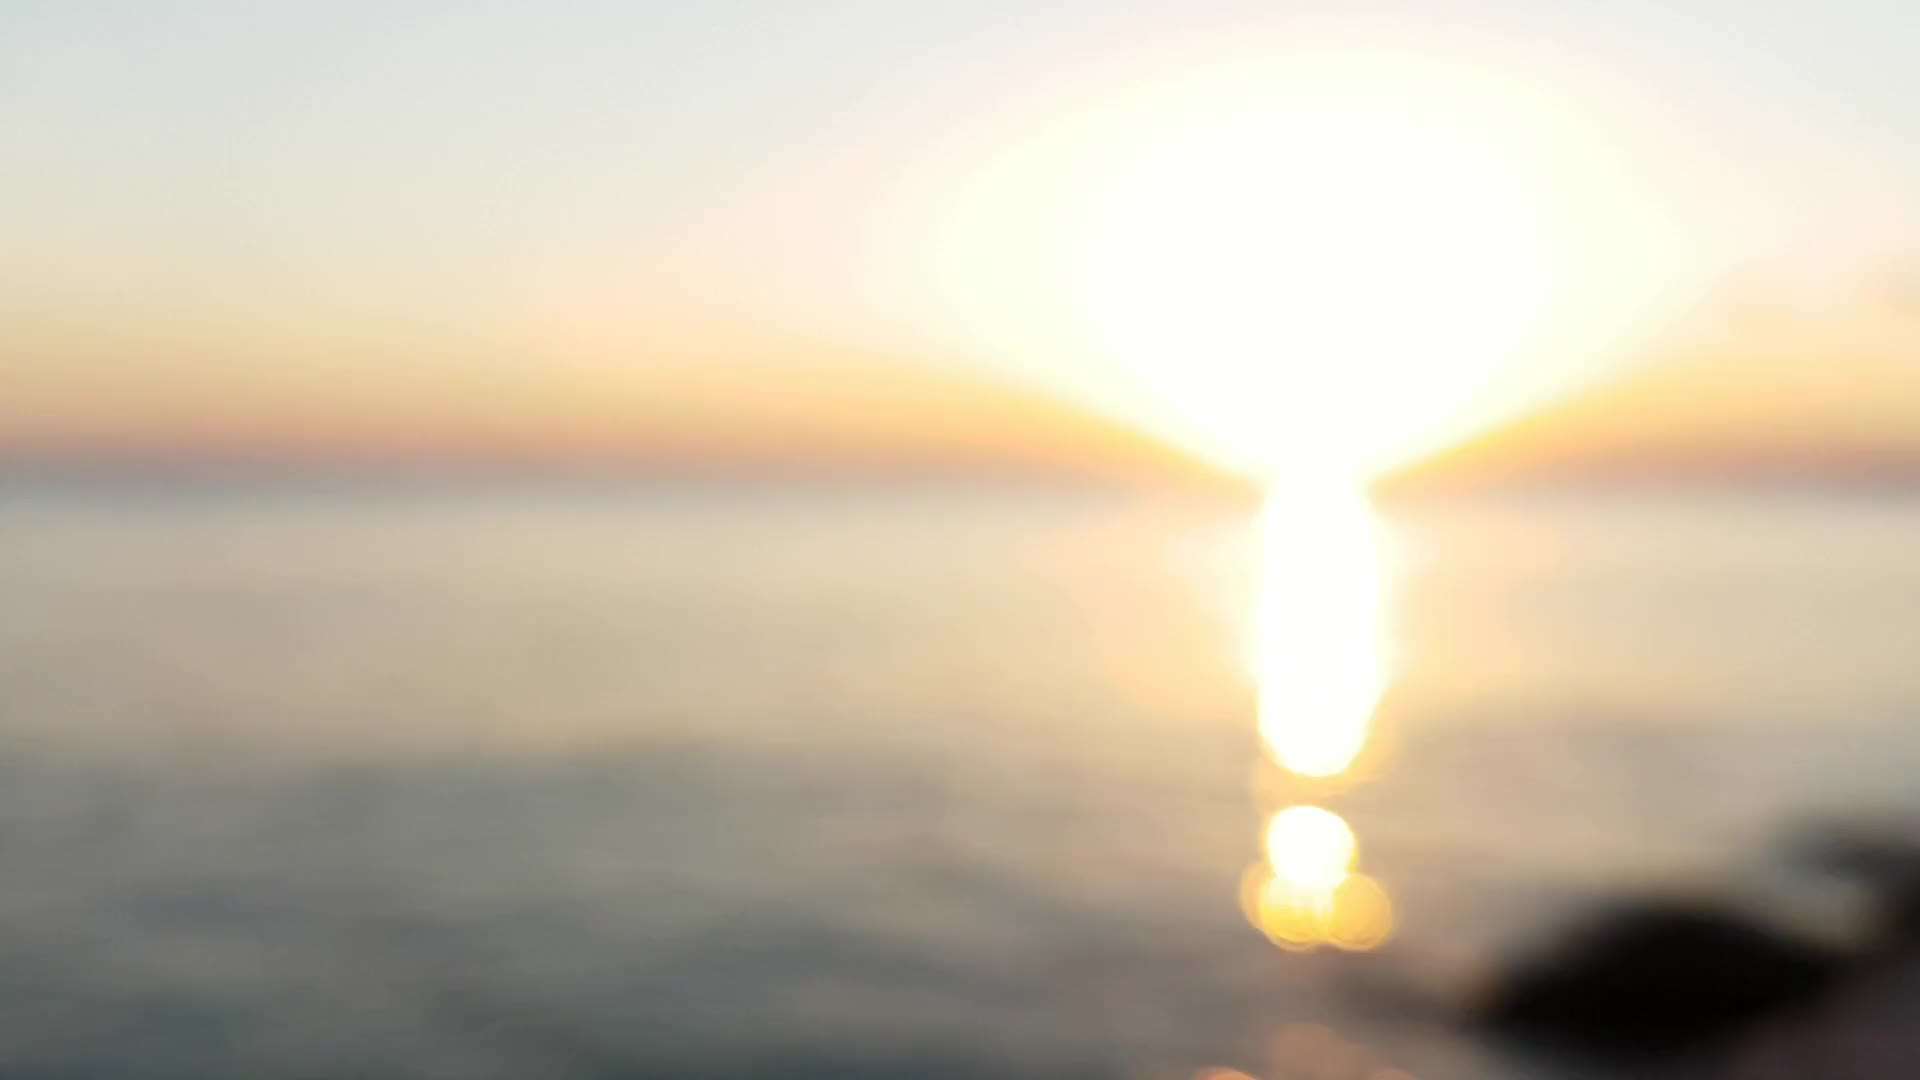 Blurred seaside sunset with water sound